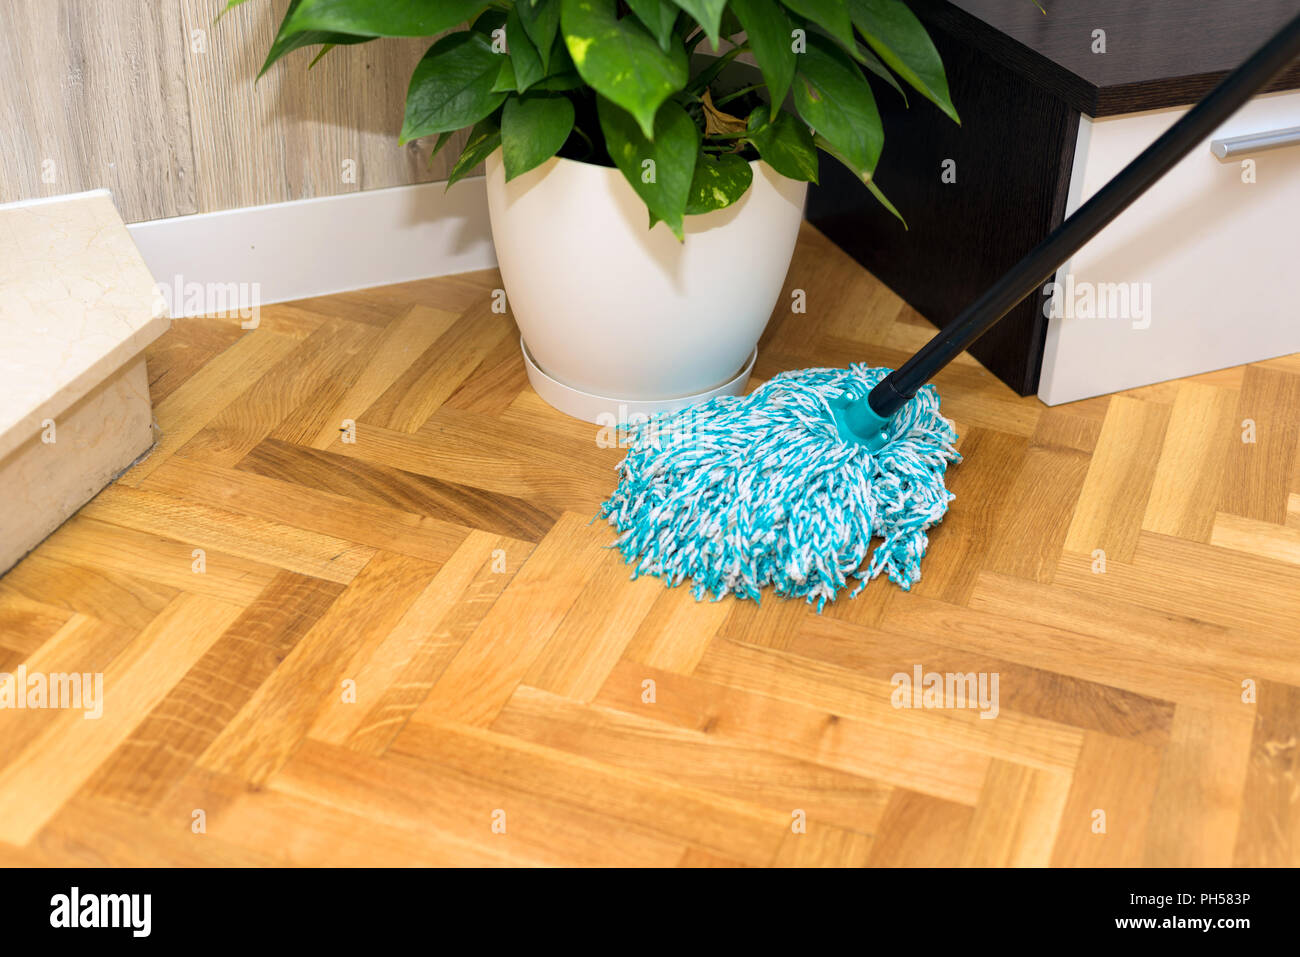 cleaning floor at home Stock Photo